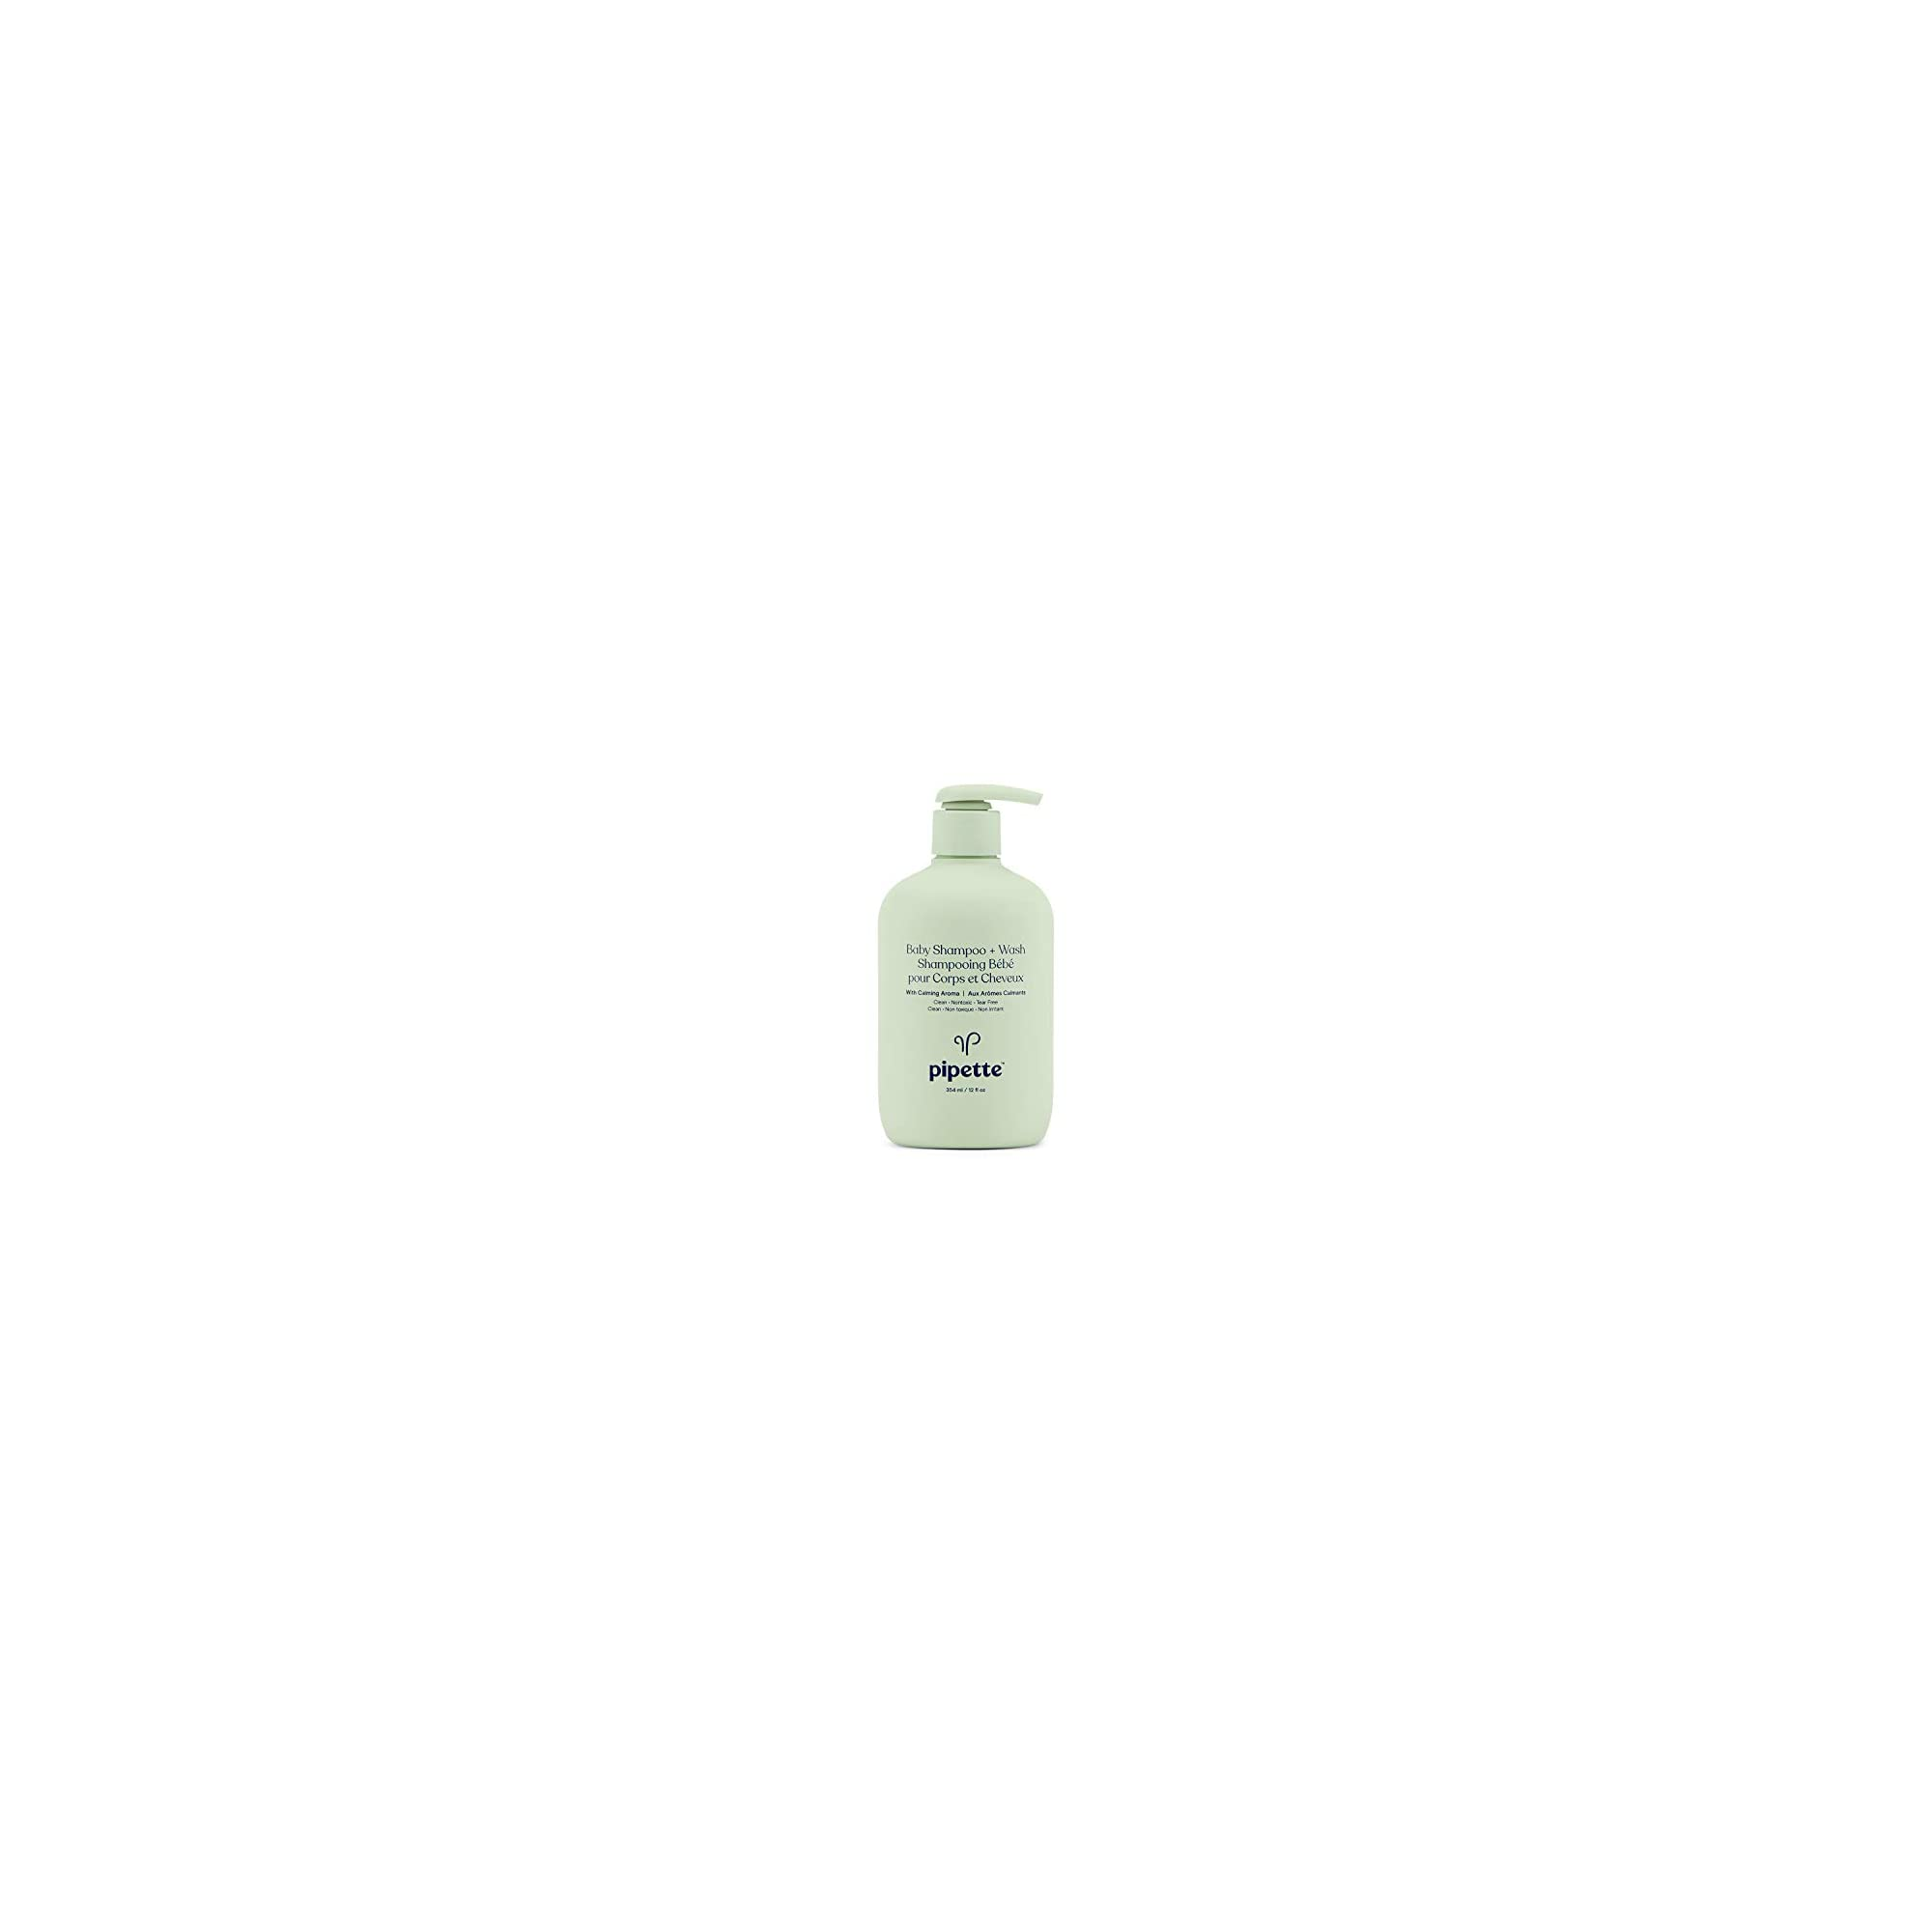 Pipette Baby Shampoo and Body Wash Tear-Free with Renewable Plant-Derived Squalane (Calming, 12-Fluid-Ounce)